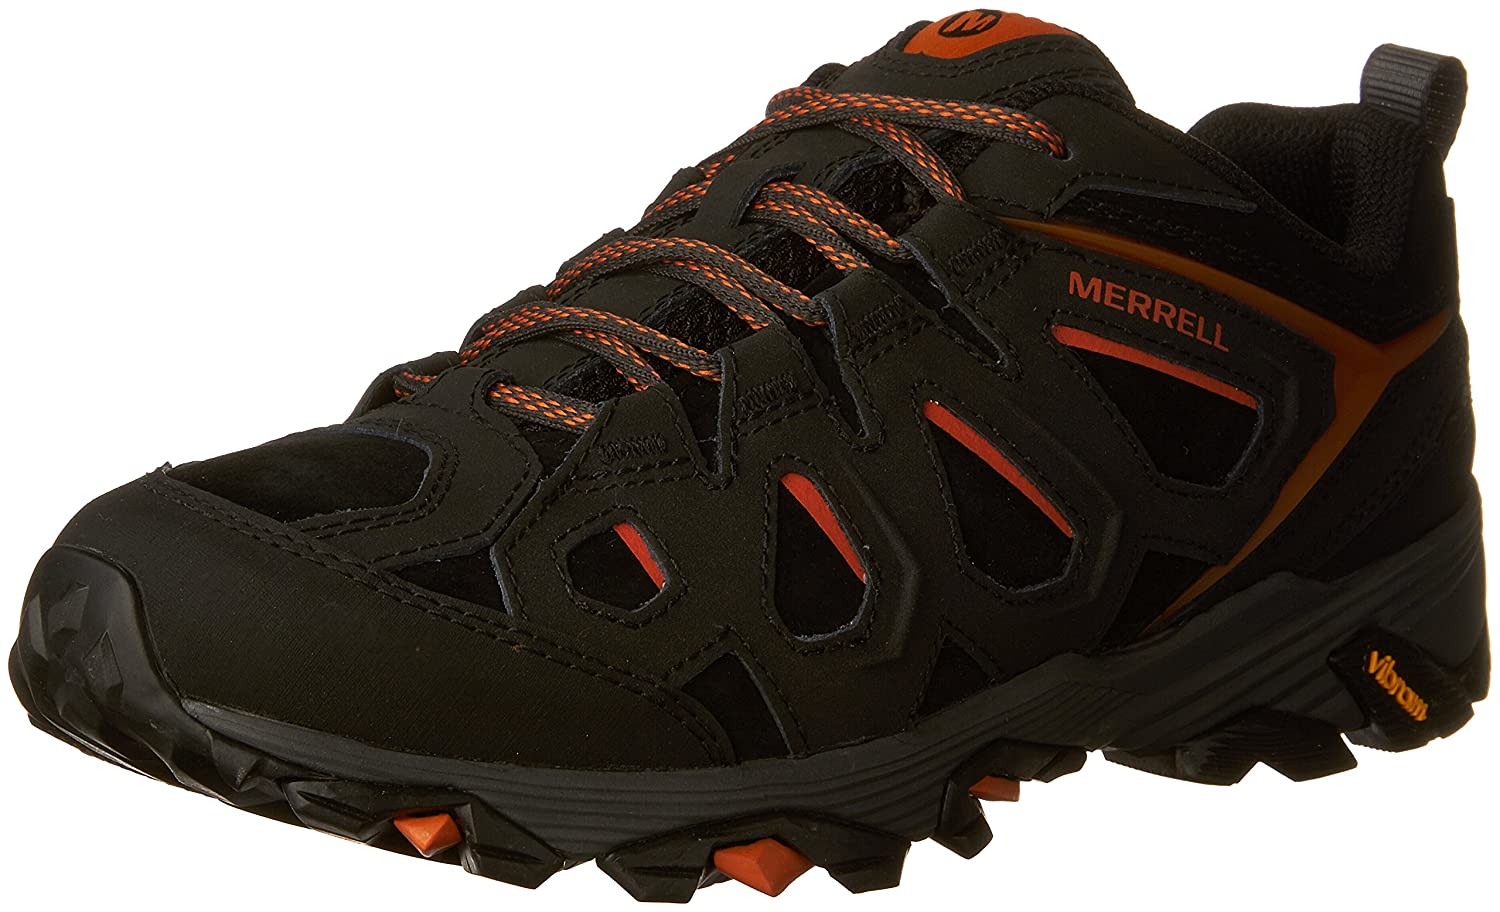 Merrell Moab FST GTX Men's Walking Schuhes